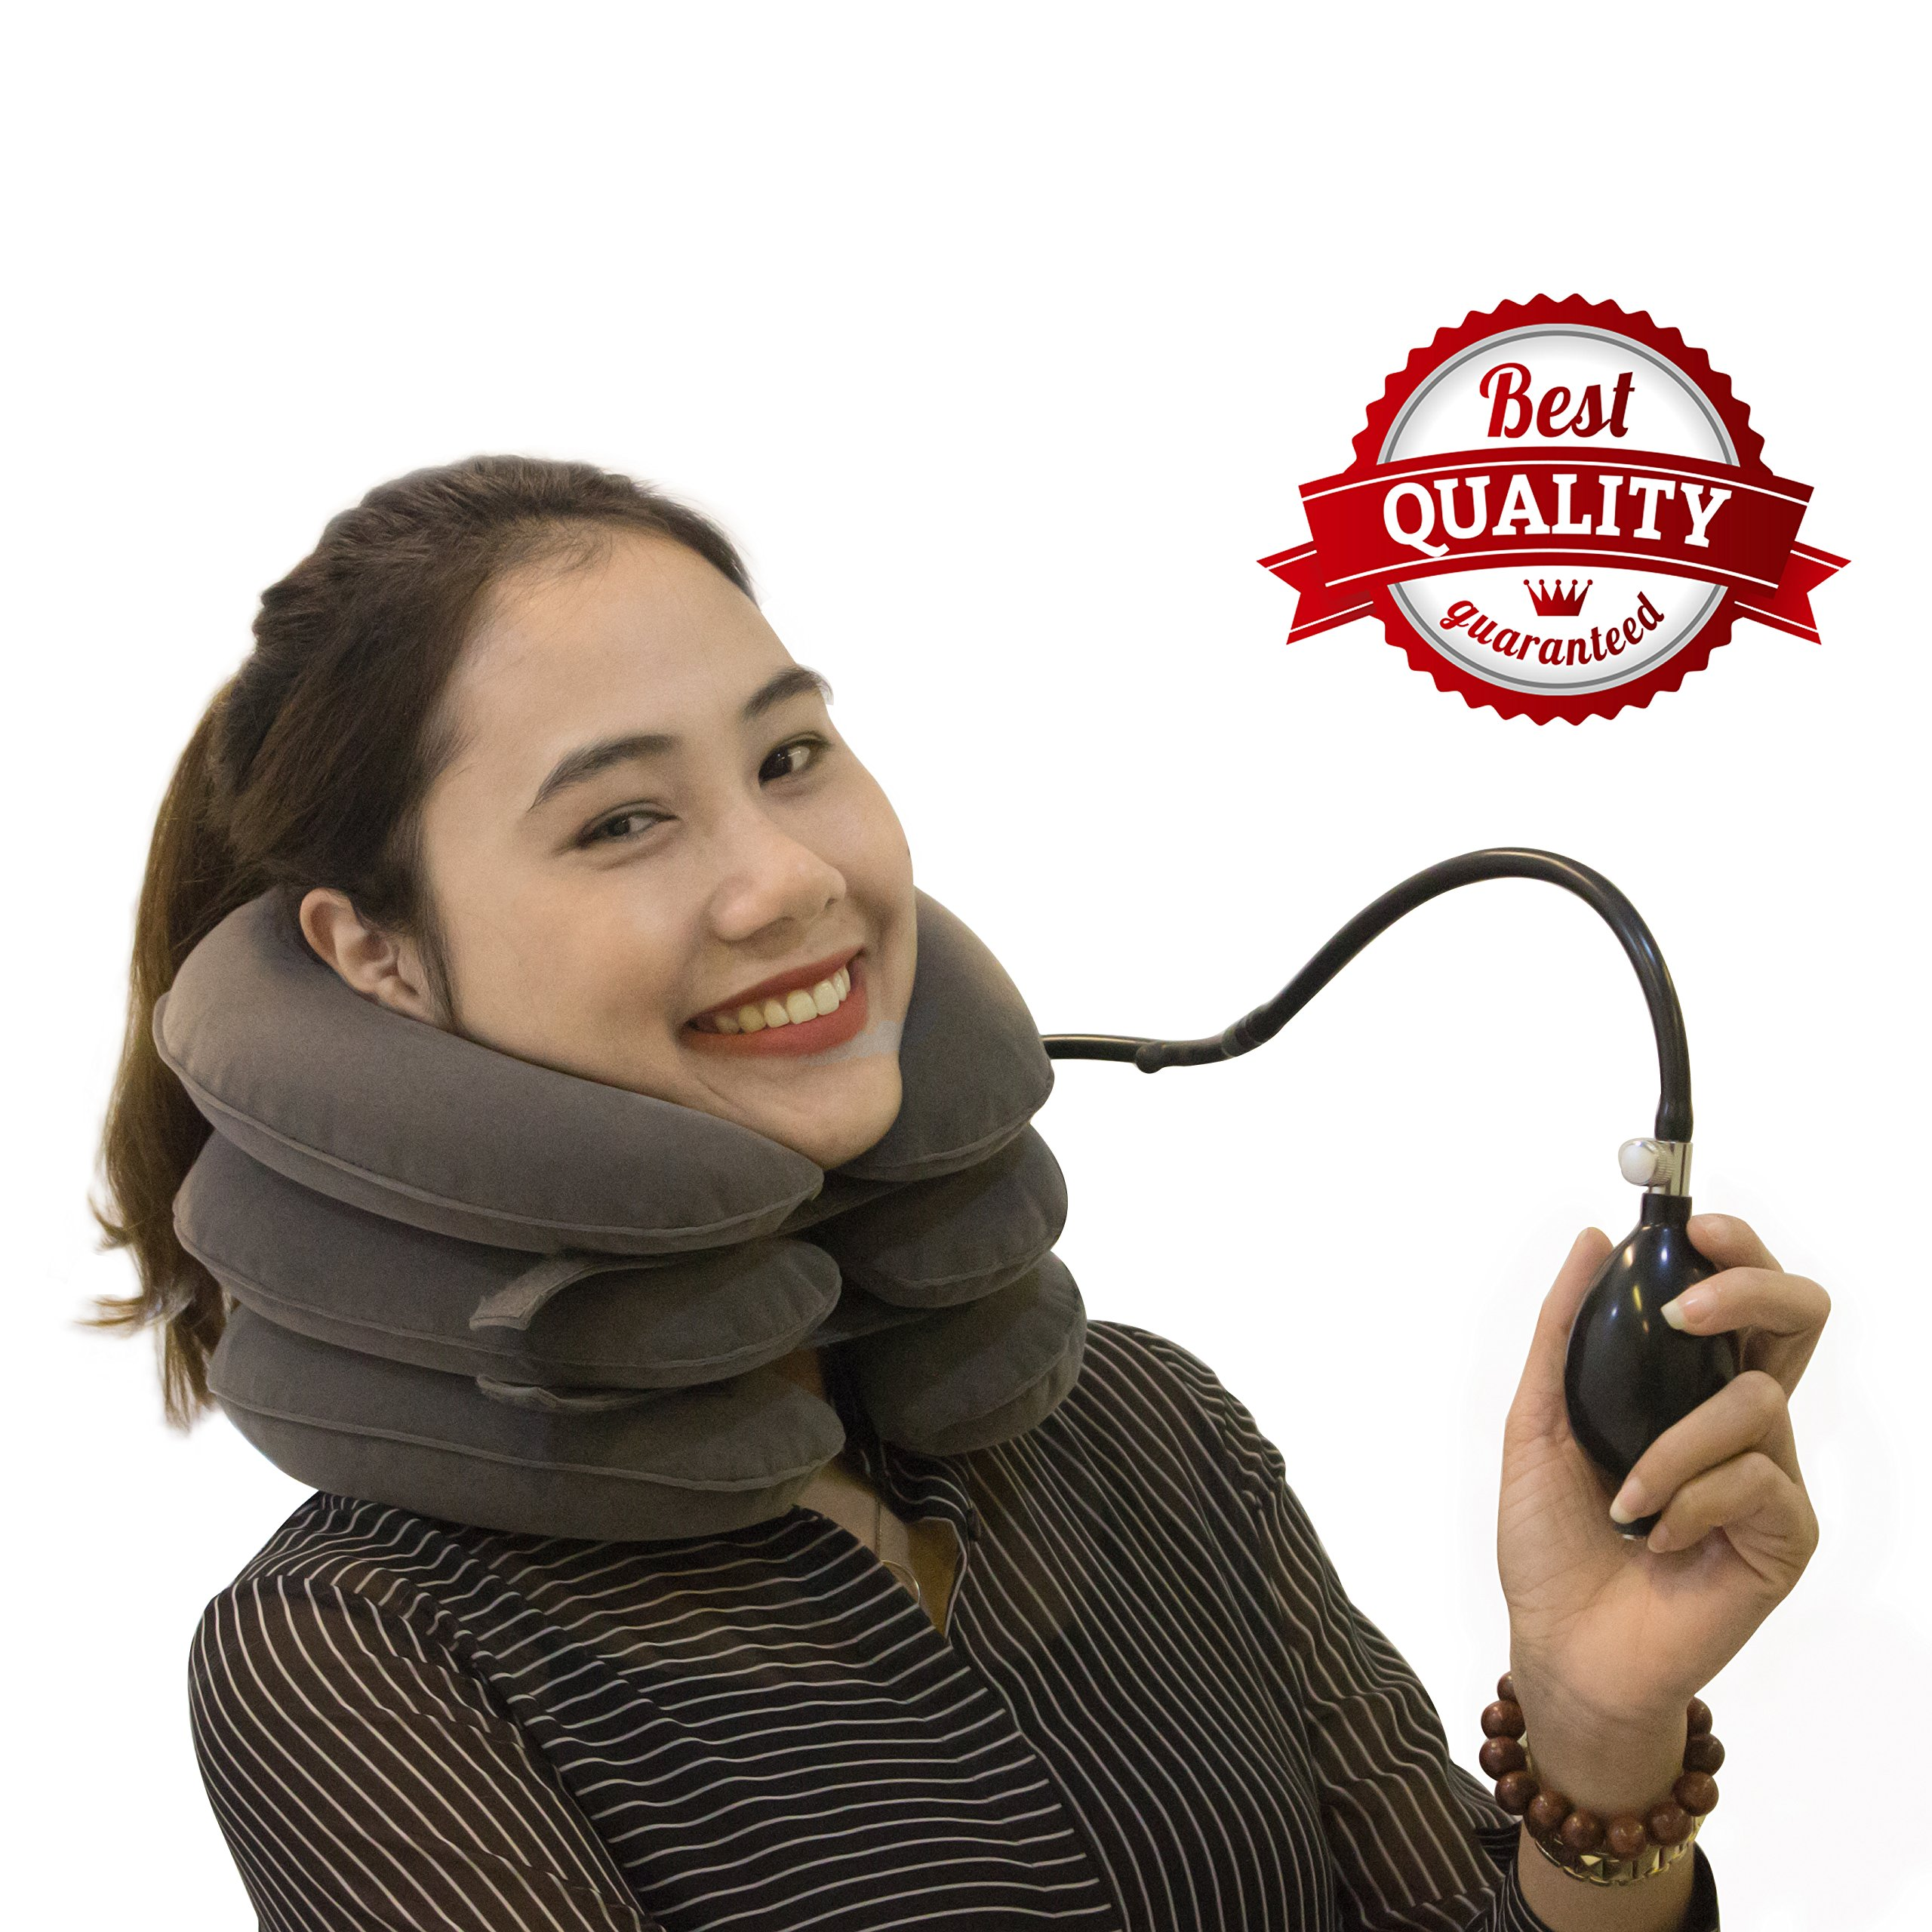 Cervical Neck Traction Device By SAULLA - Fixed Neck And Shoulders - frees up your neck pain| you will feel effective in the first use - especially effective with acute muscular pain